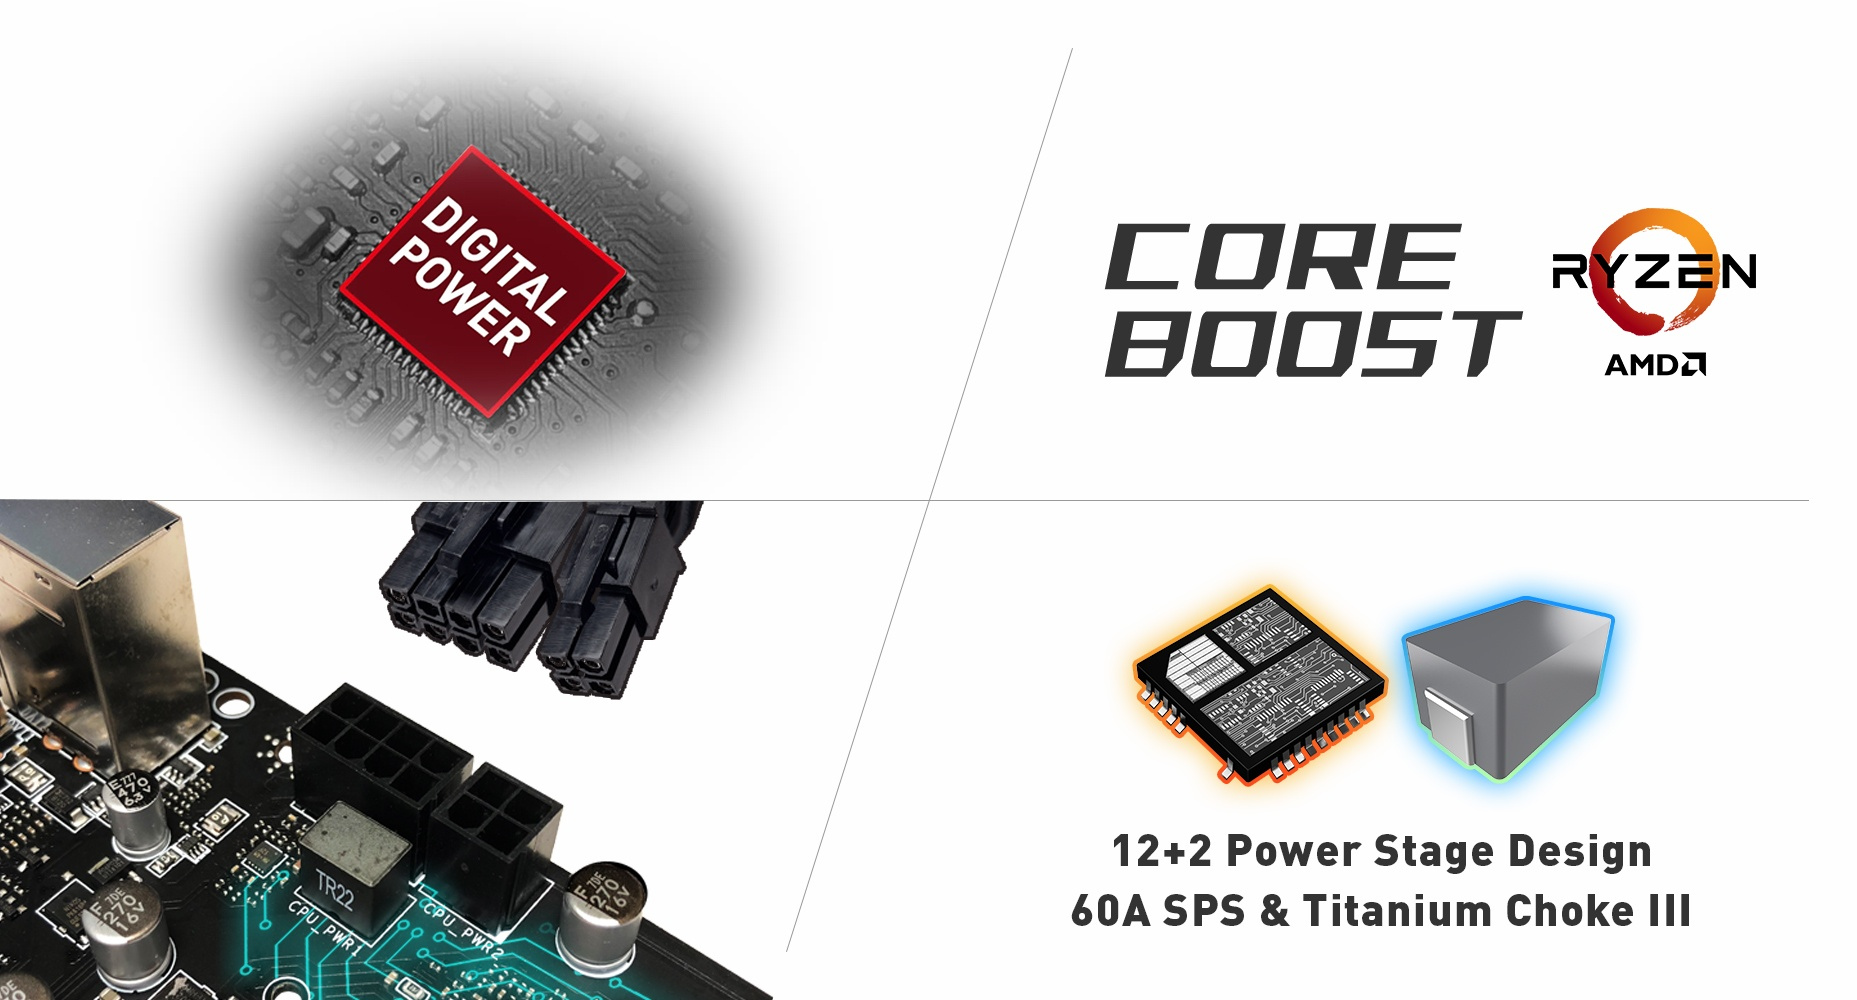 digital power icon, coreboost logo, port of motherboard and 12+2 power stage design